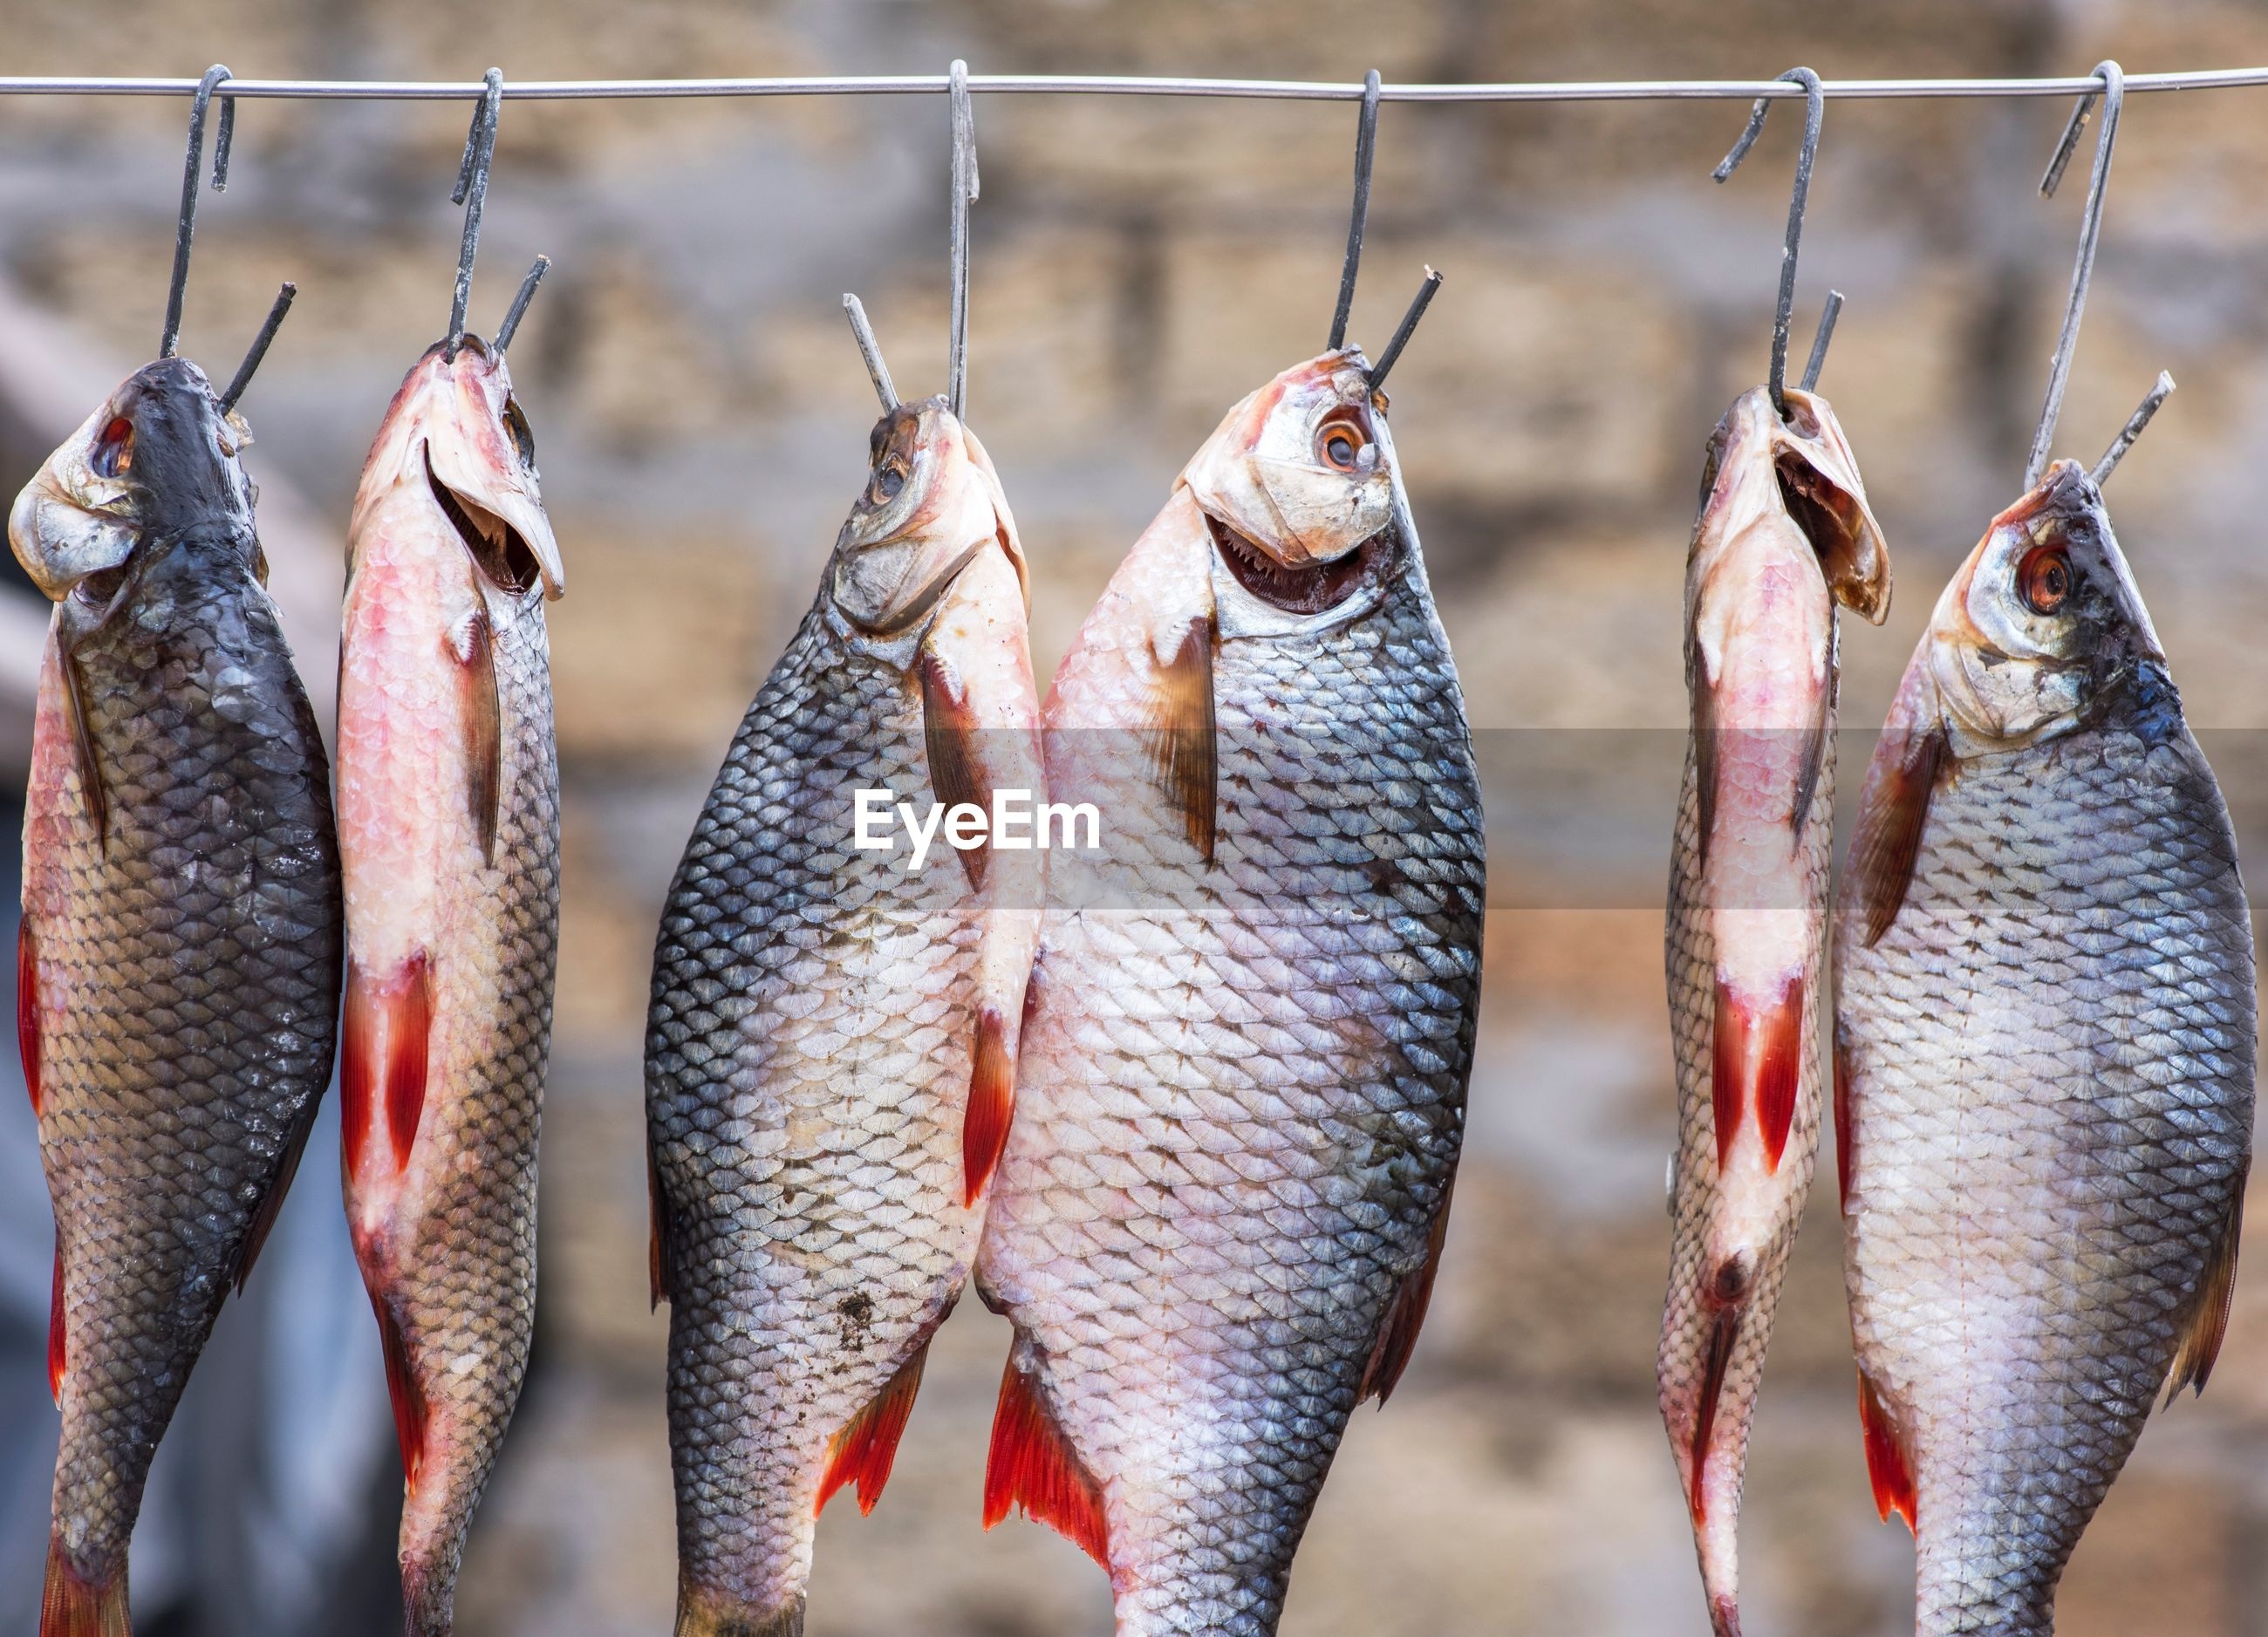 Close-up of fishes hanging on clothesline